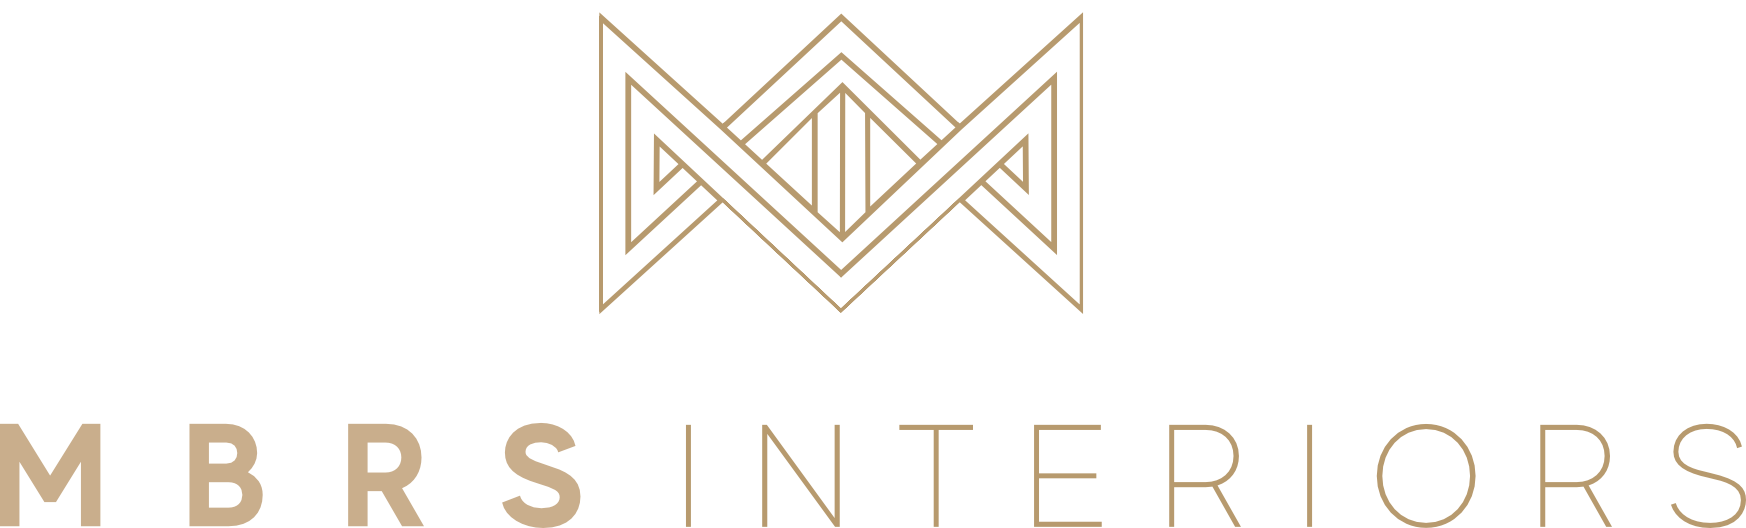 Logo MBRS interiors